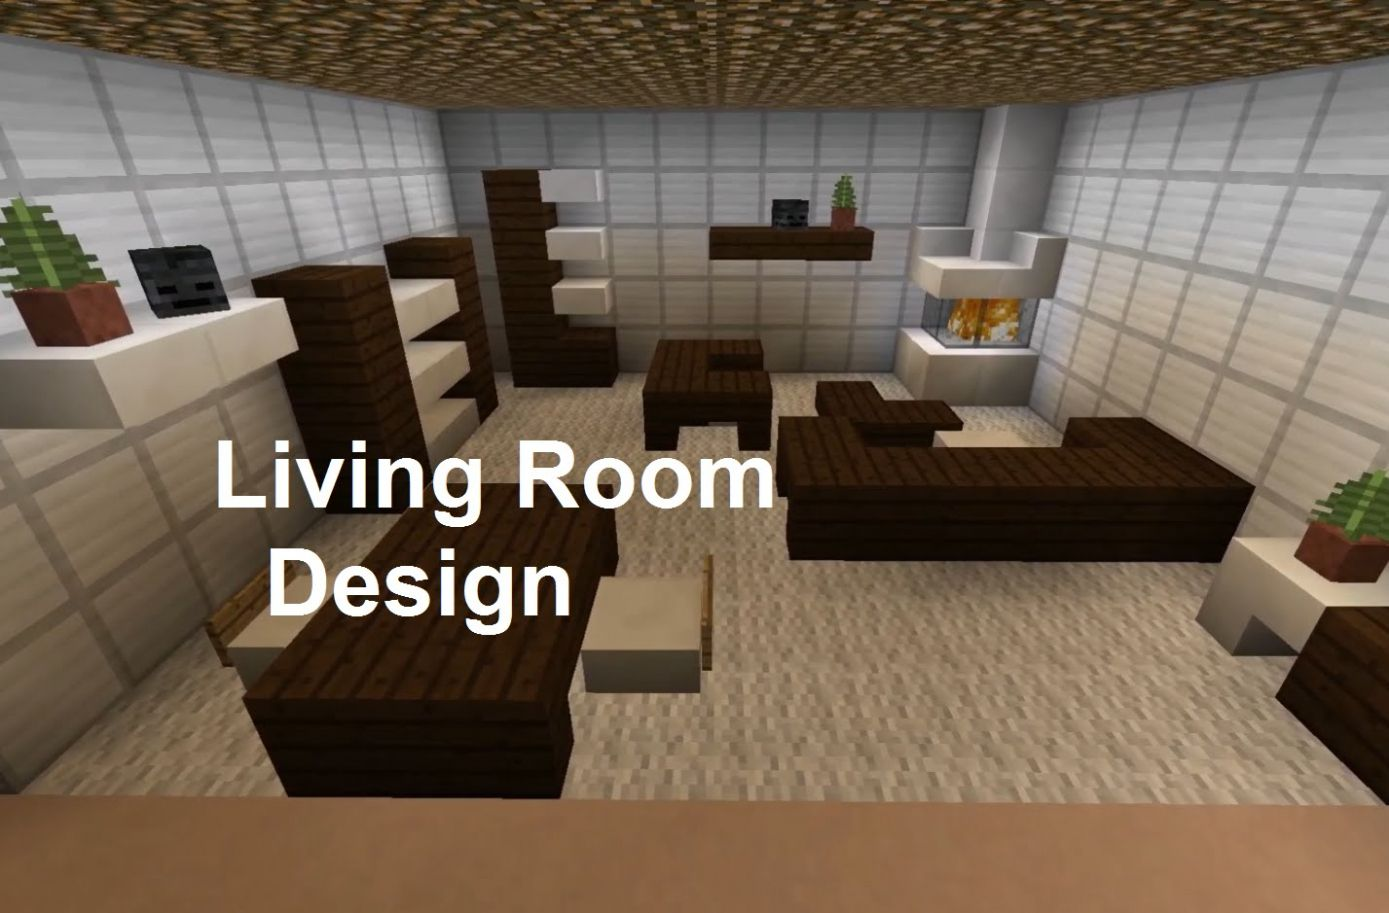 How To Make Living Room Furniture In Minecraft Ceiling Beams Pin By Hendro Birowo On Modern Design Low Budget Decor 2018 Neutral Interior Paint Colors Check More At Http